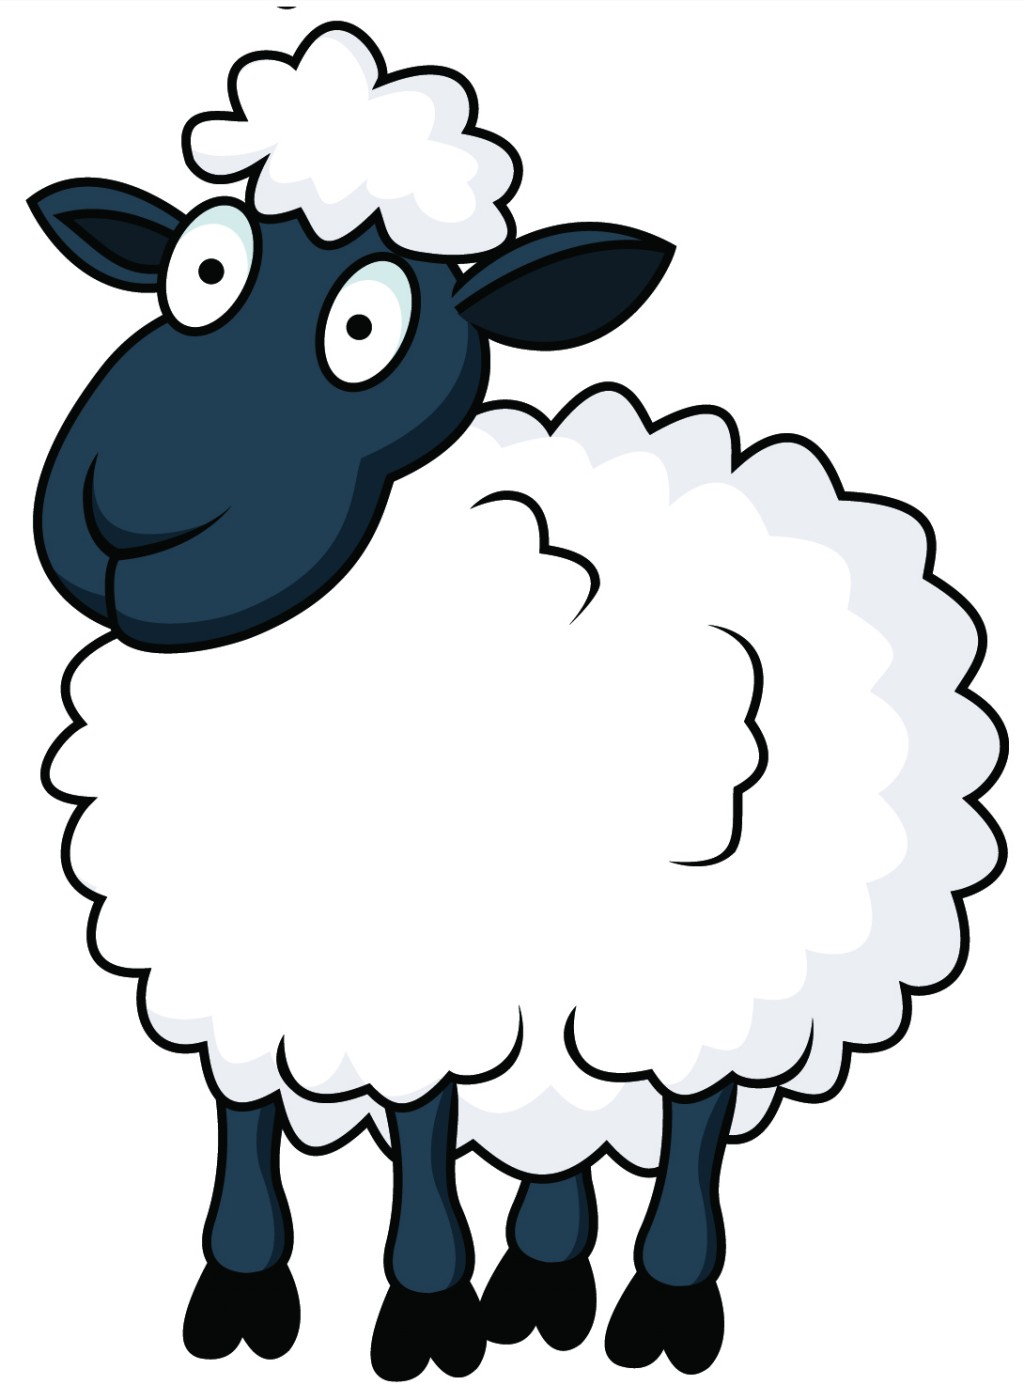 Animated sheep clipart clip library download Free Lamb Clipart animated, Download Free Clip Art on Owips.com clip library download